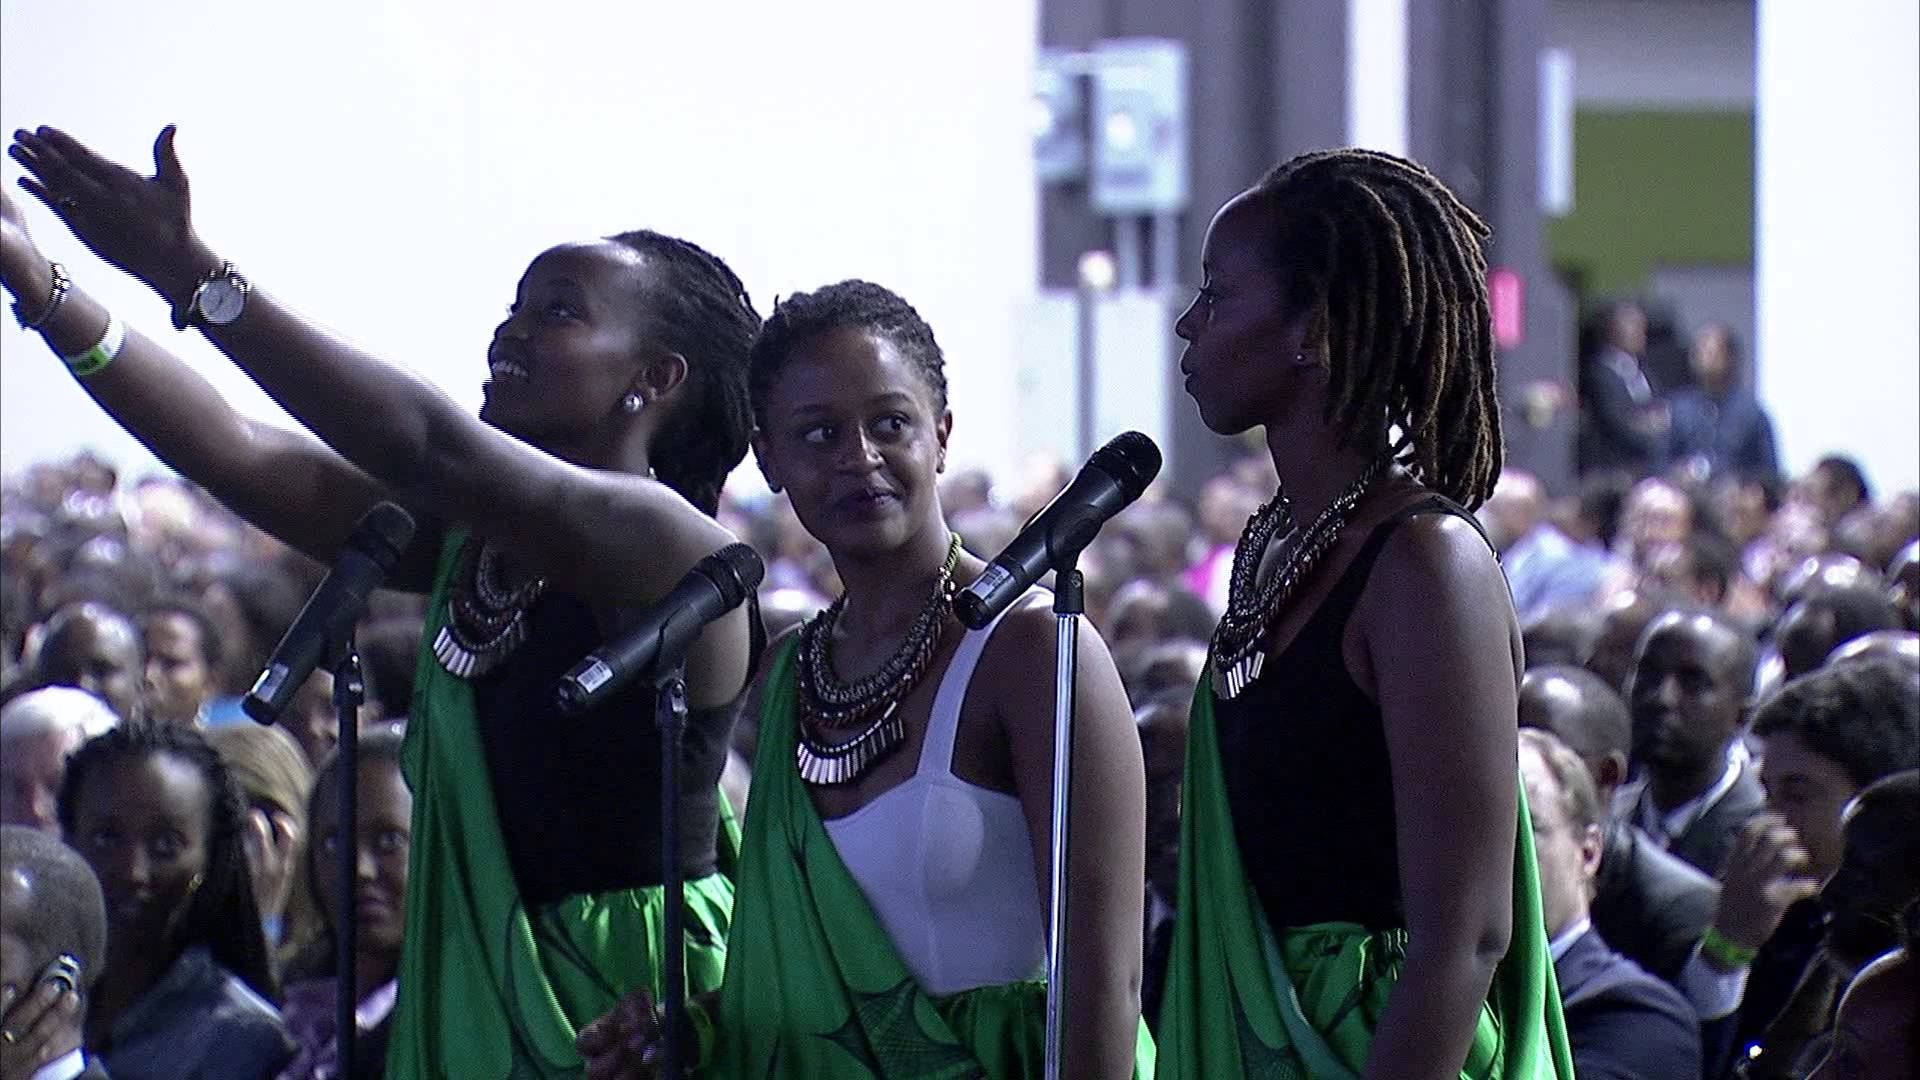 Poem by Angel Uwamahoro at Rwanda Day Atlanta, 20 Sept 2014